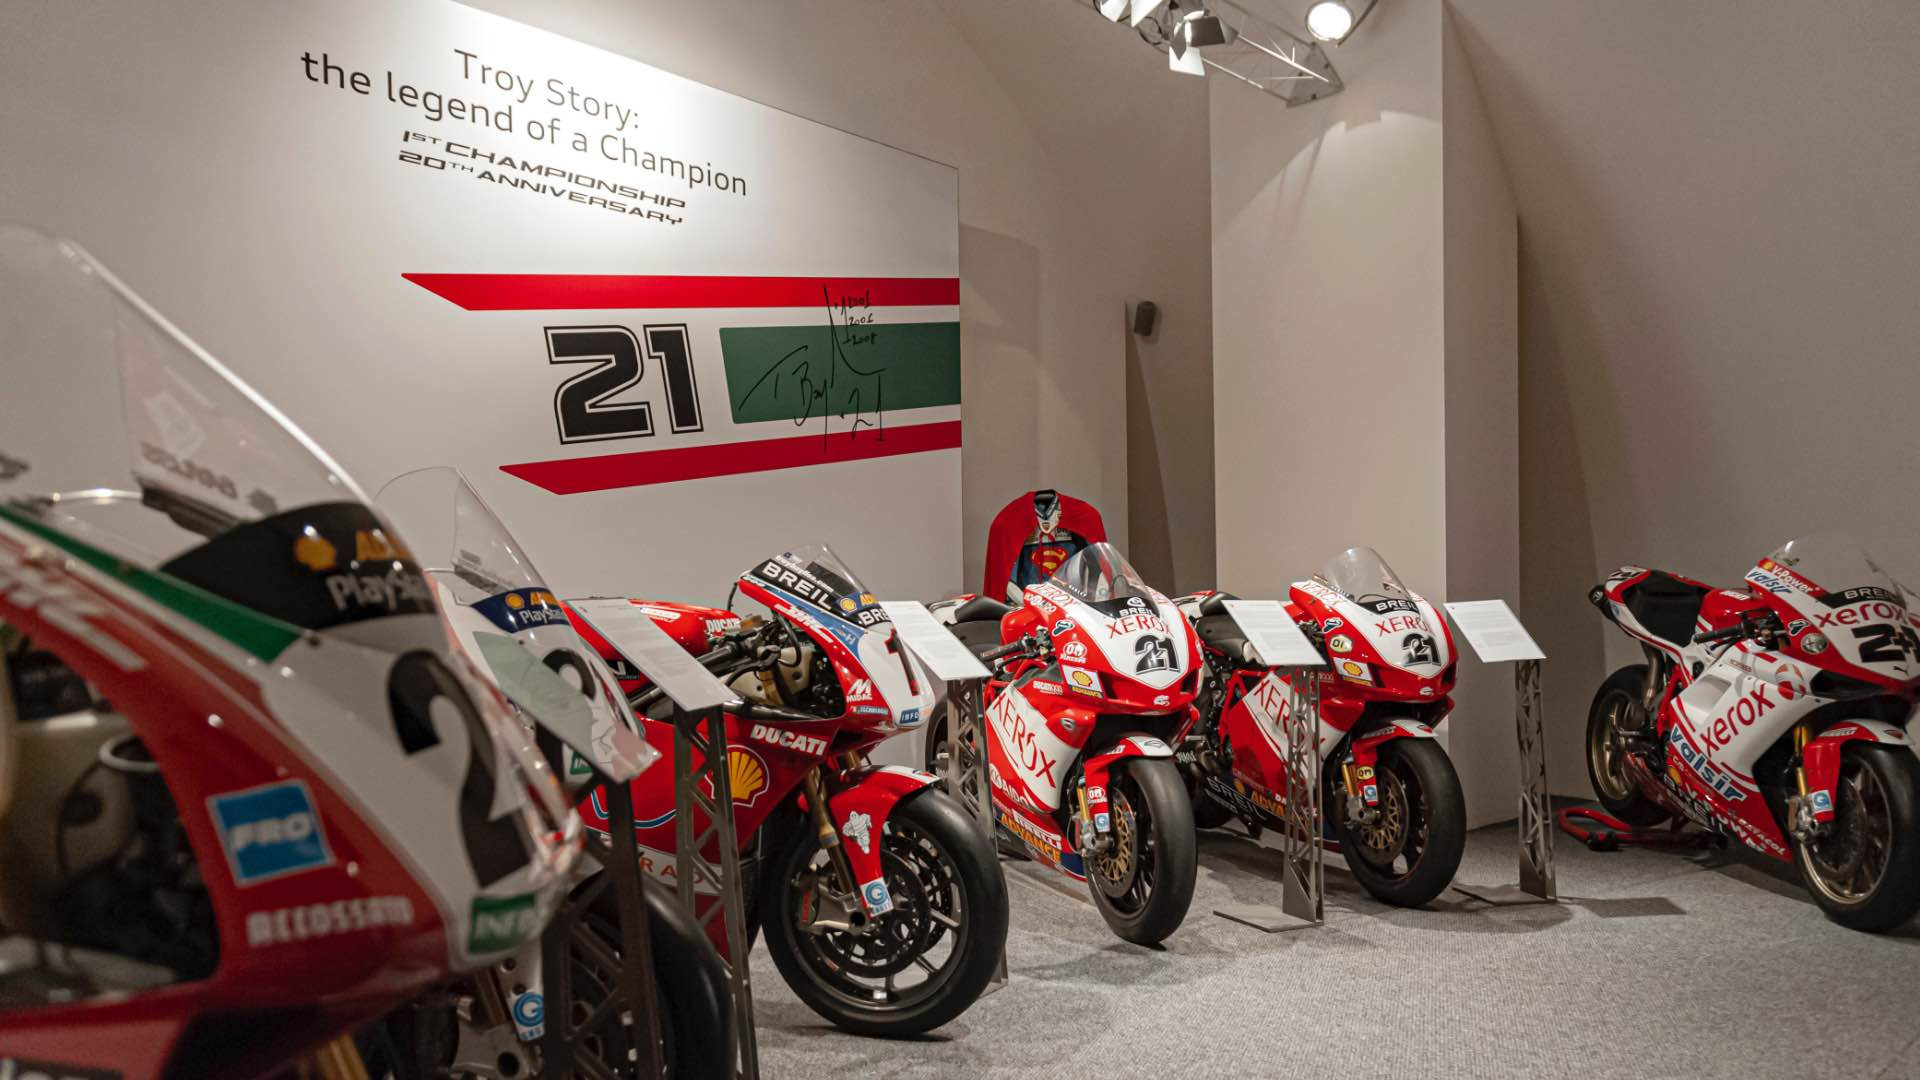 A temporary exhibition at the Ducati Museum for 20 years since Troy Bayliss's first world title.